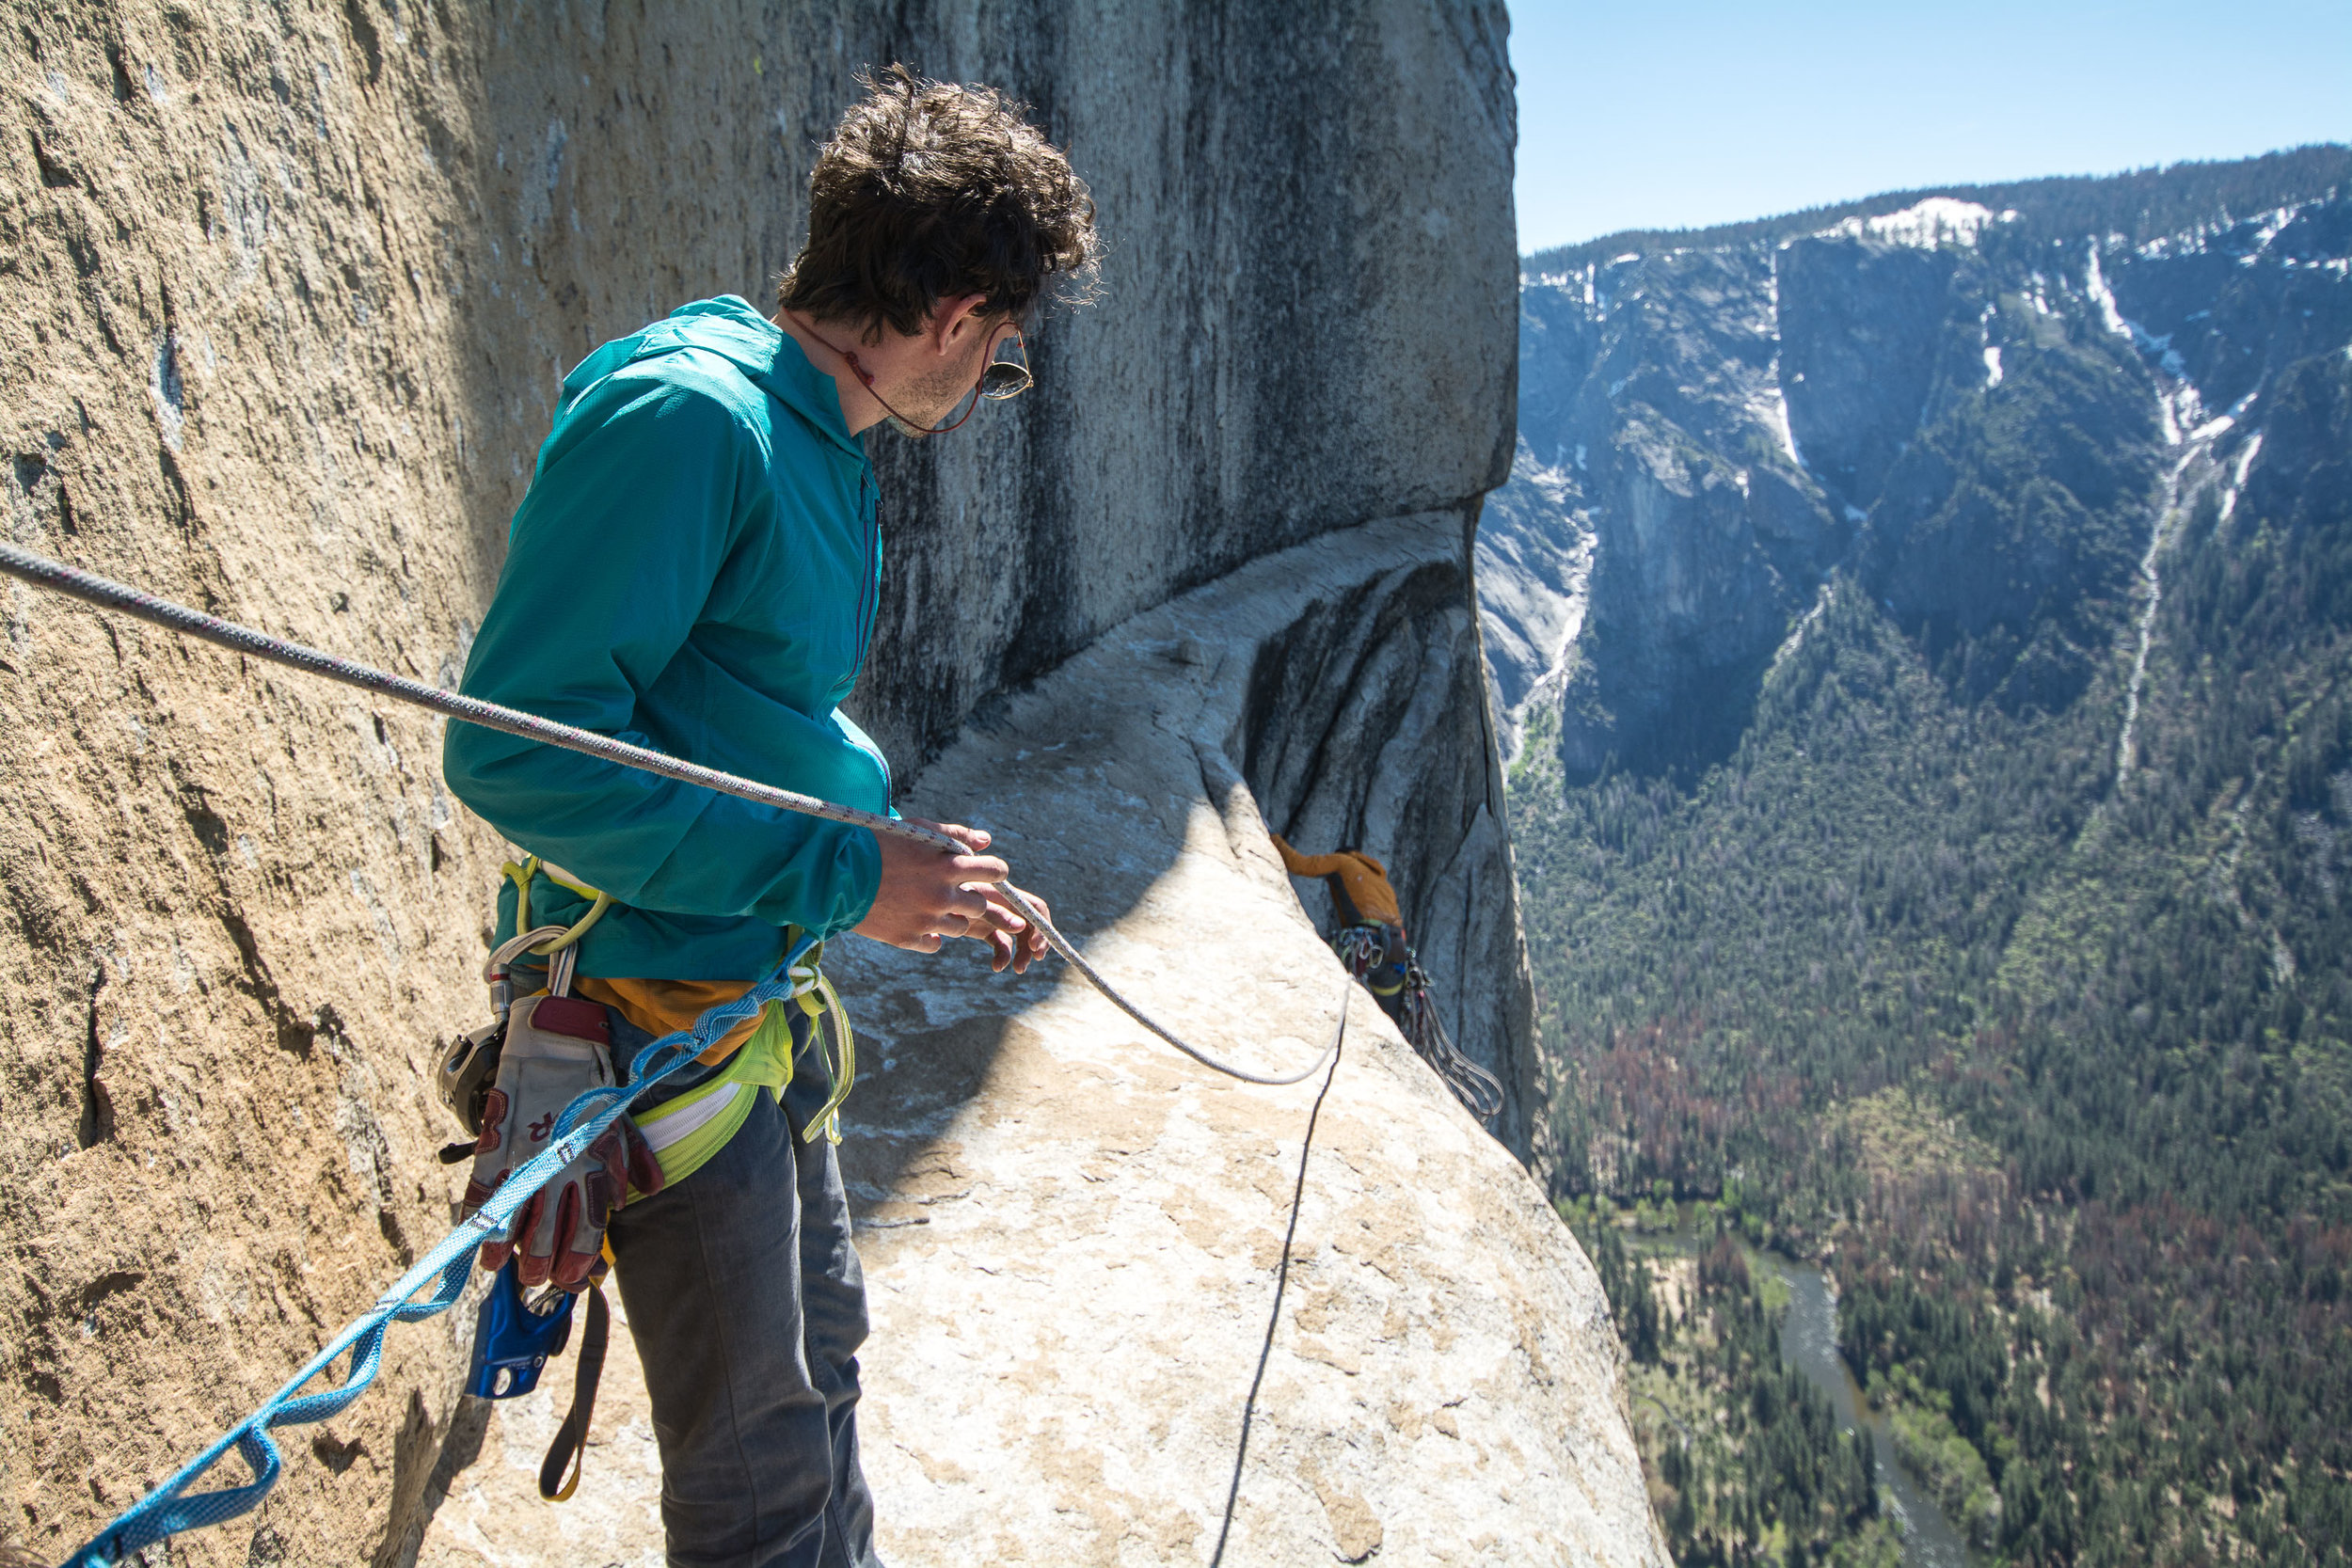 Taking a peak around the corner on one of the route's upper pitches.